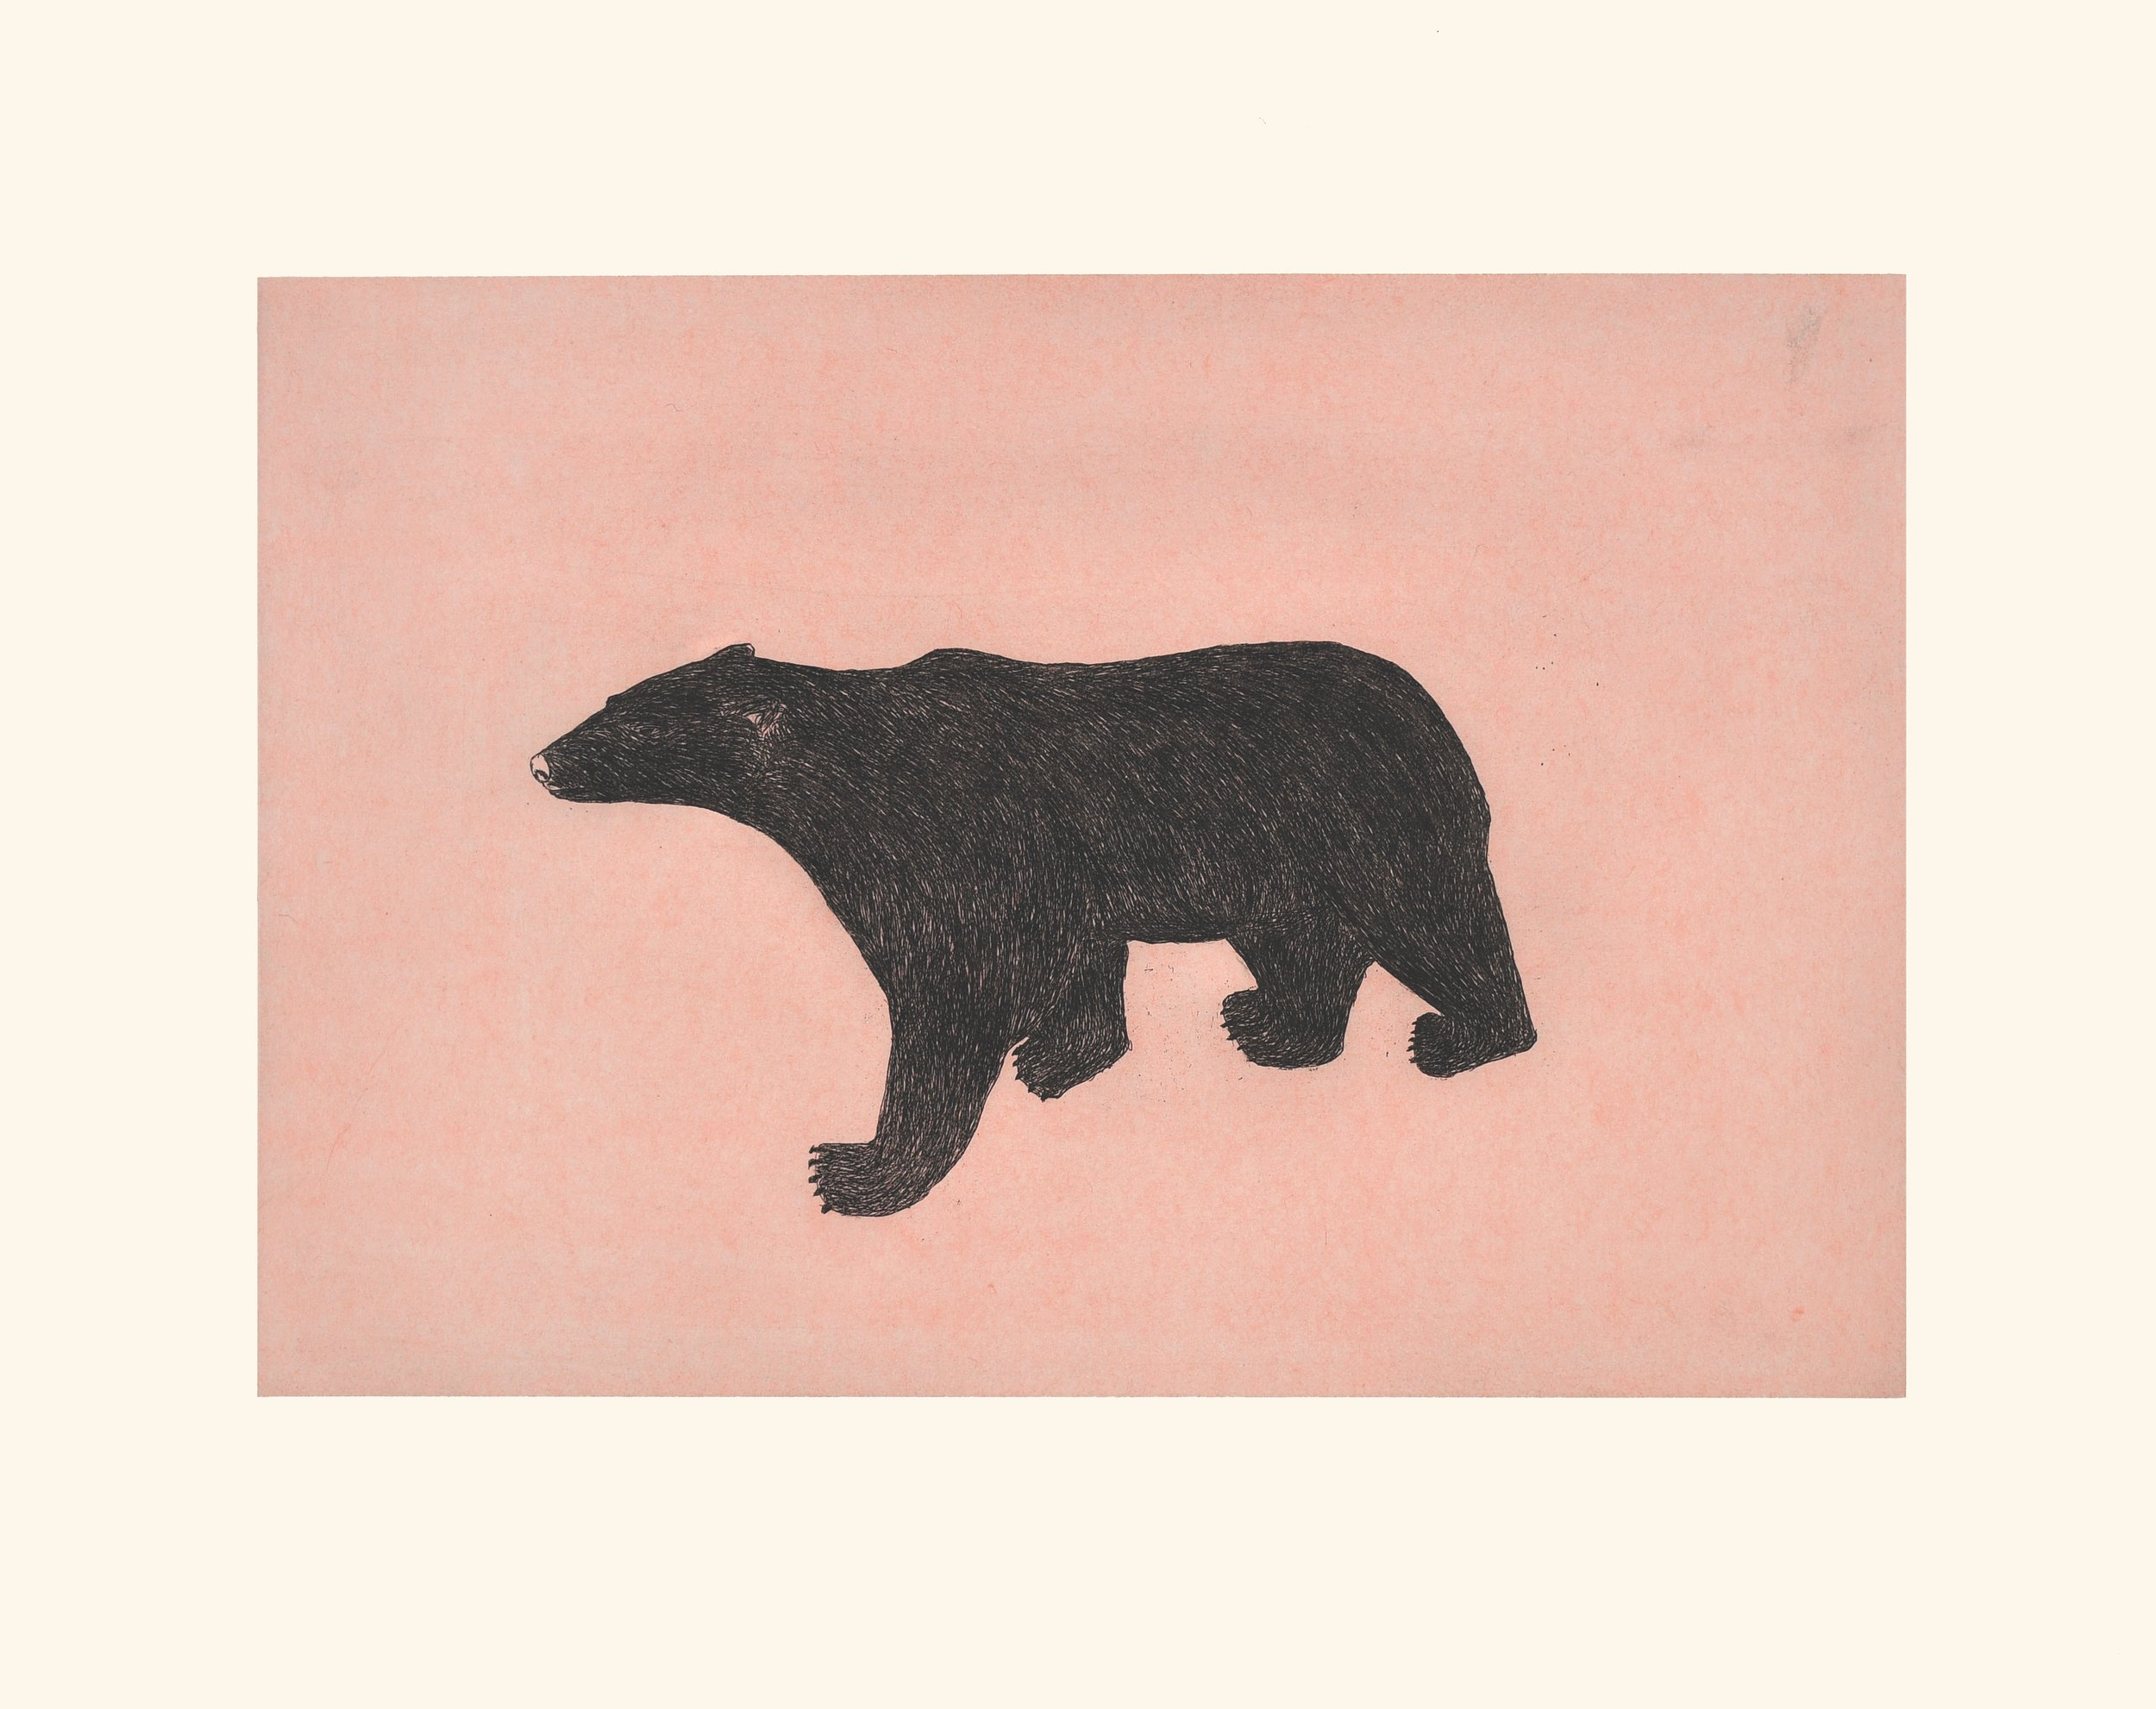 """OHITO ASHOONA 11. Prowling Bear Etching & Chine Collé Paper: Arches White Printer: Studio PM 64 x 80 cm 25 ¼"""" x 31 ½"""" $ 800 $640 $600"""